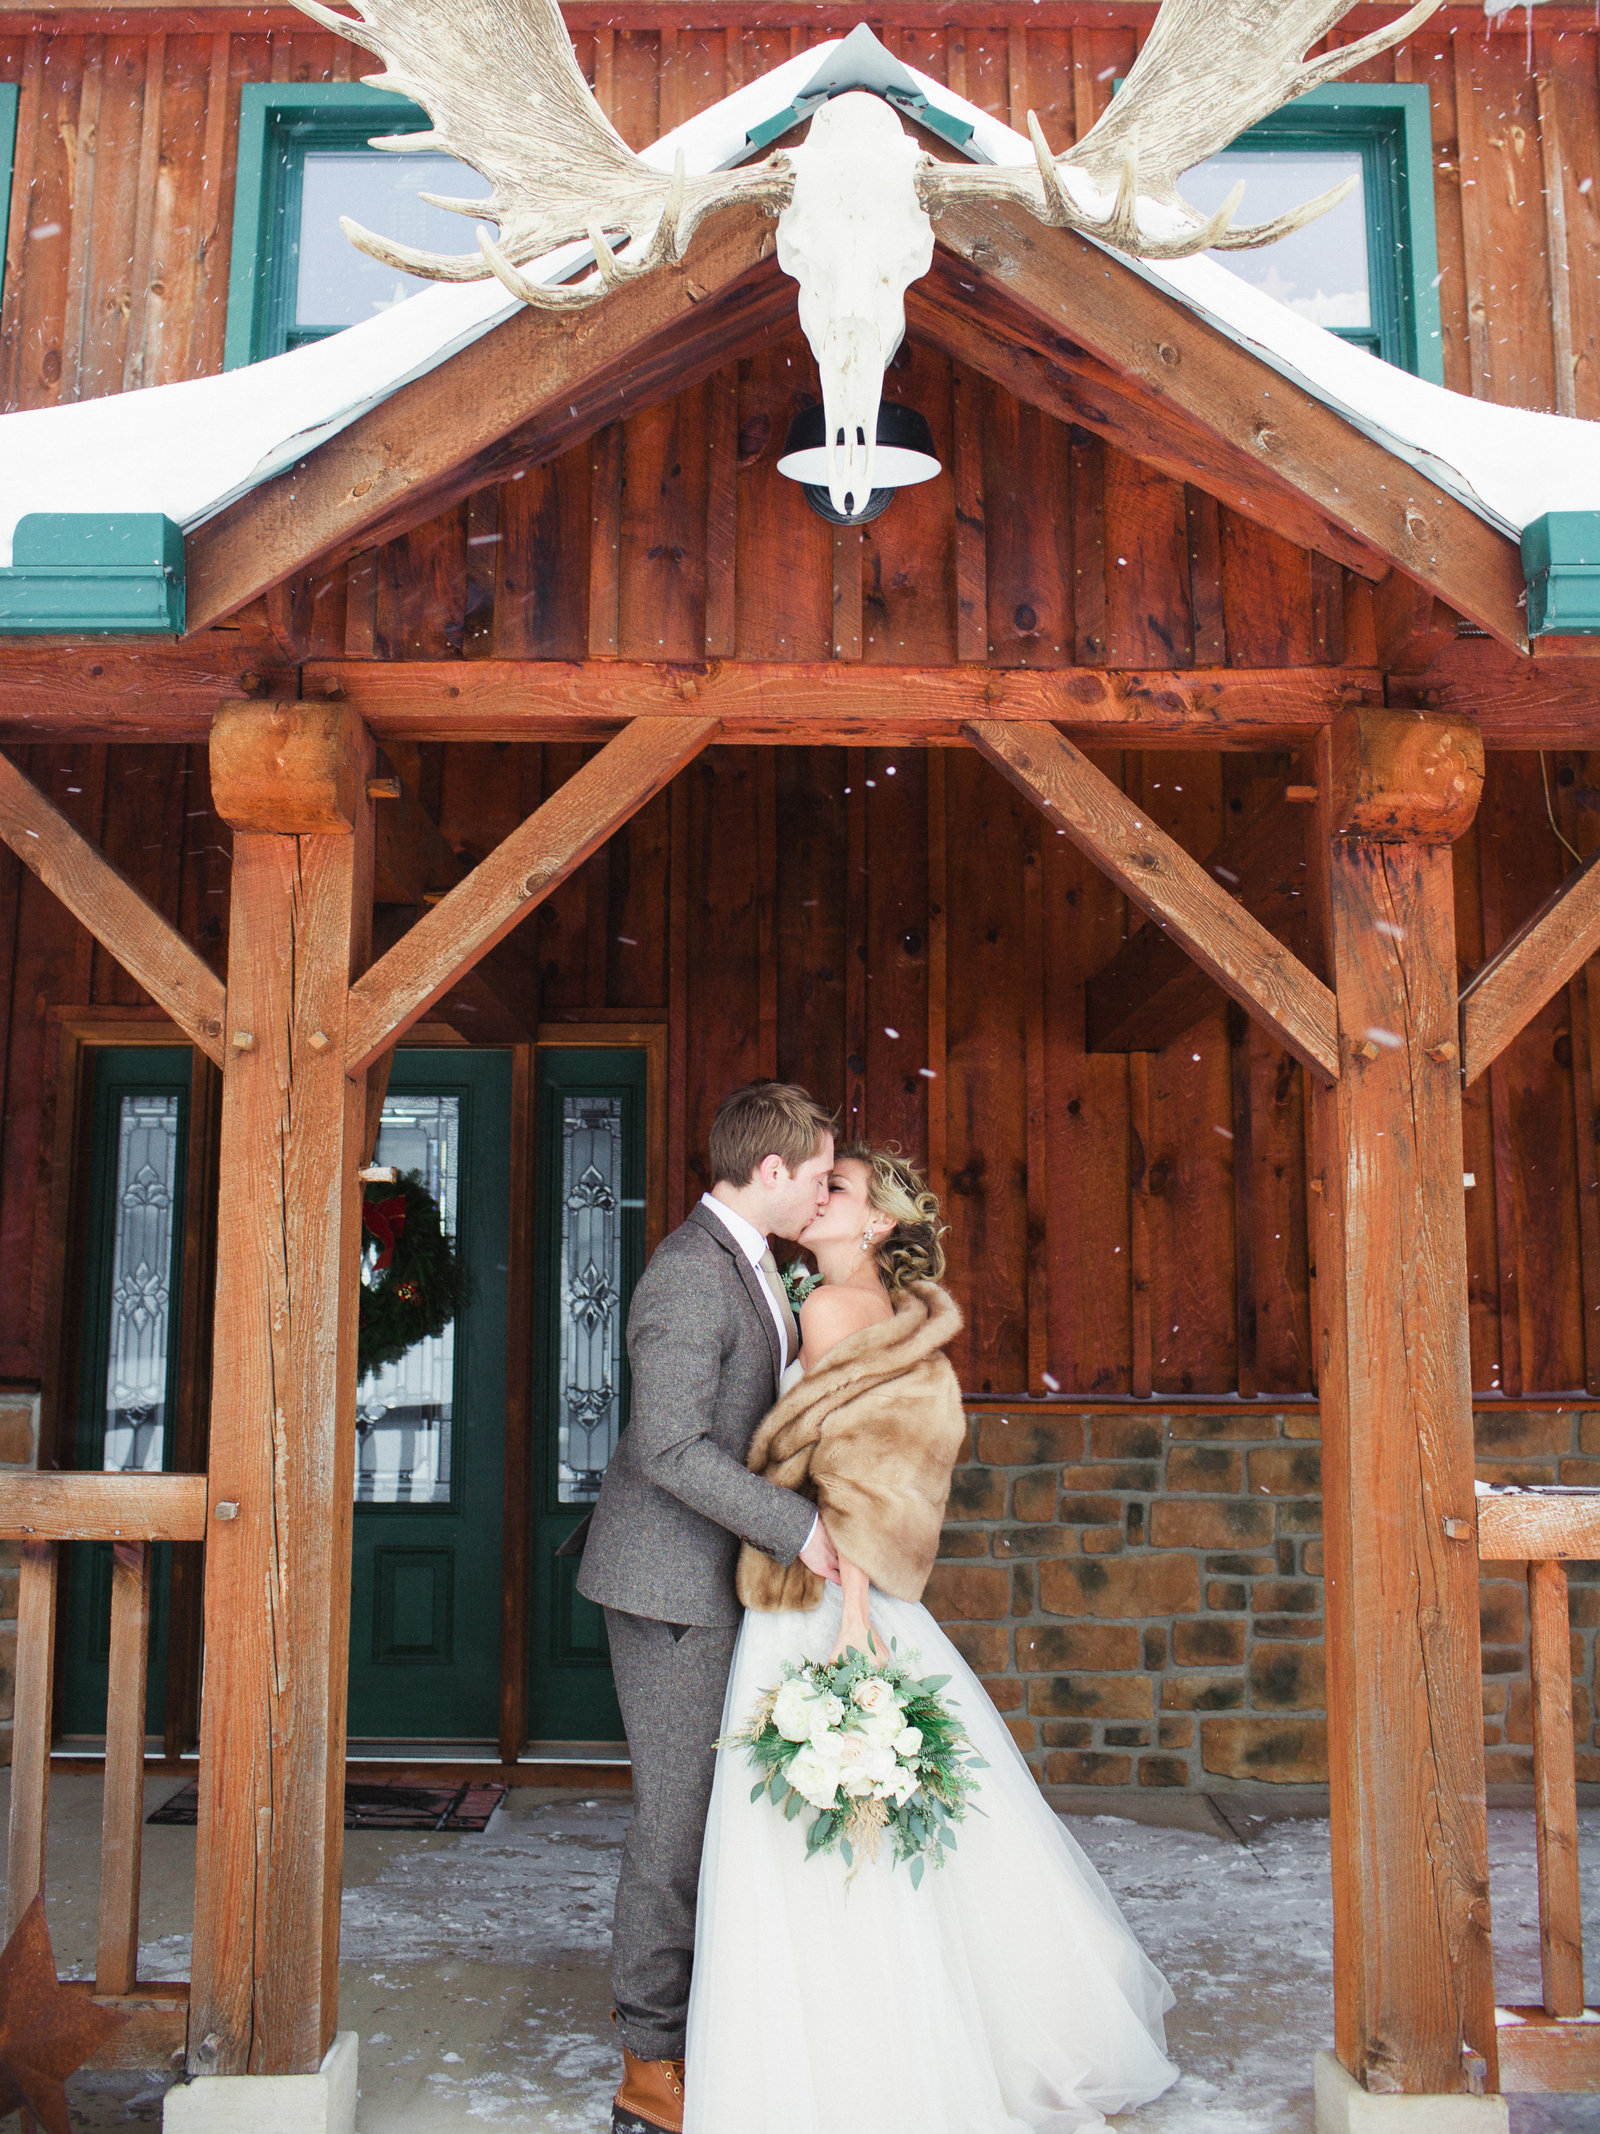 SnowyWedding-LaurenFairPhotography-MS01-29